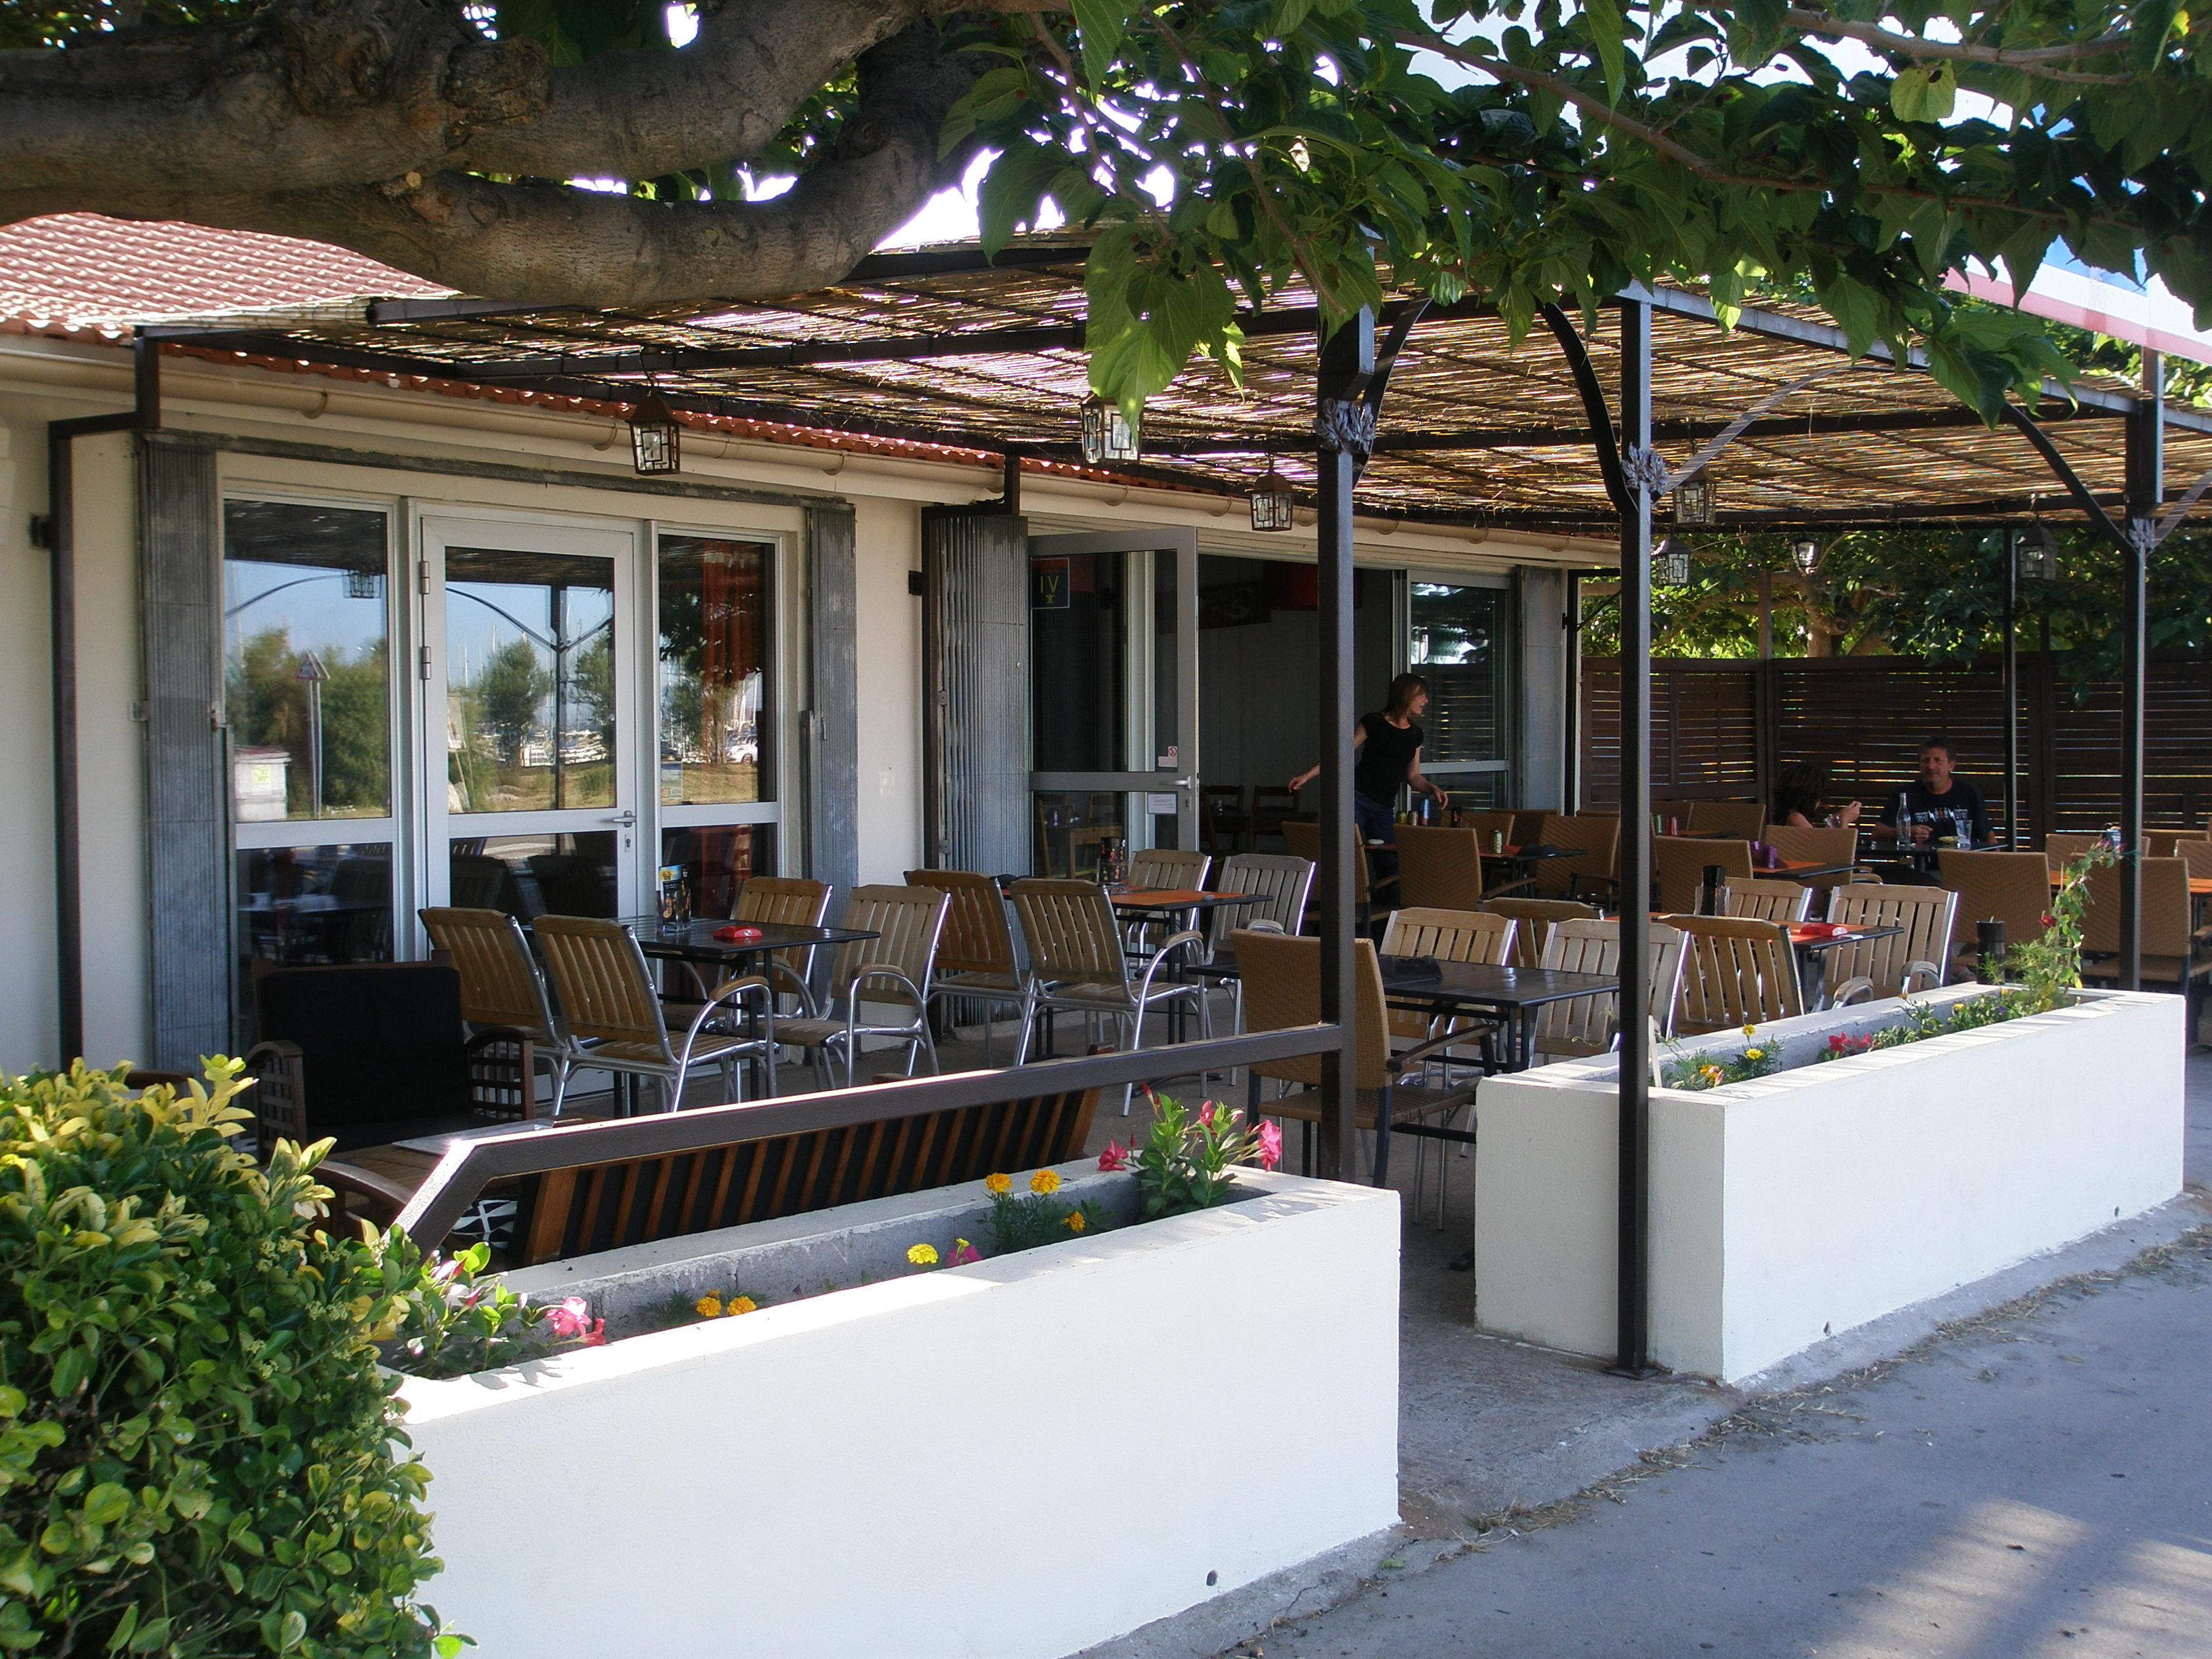 Restaurant la part gue port saint louis du rh ne - Restaurant port saint louis du rhone ...